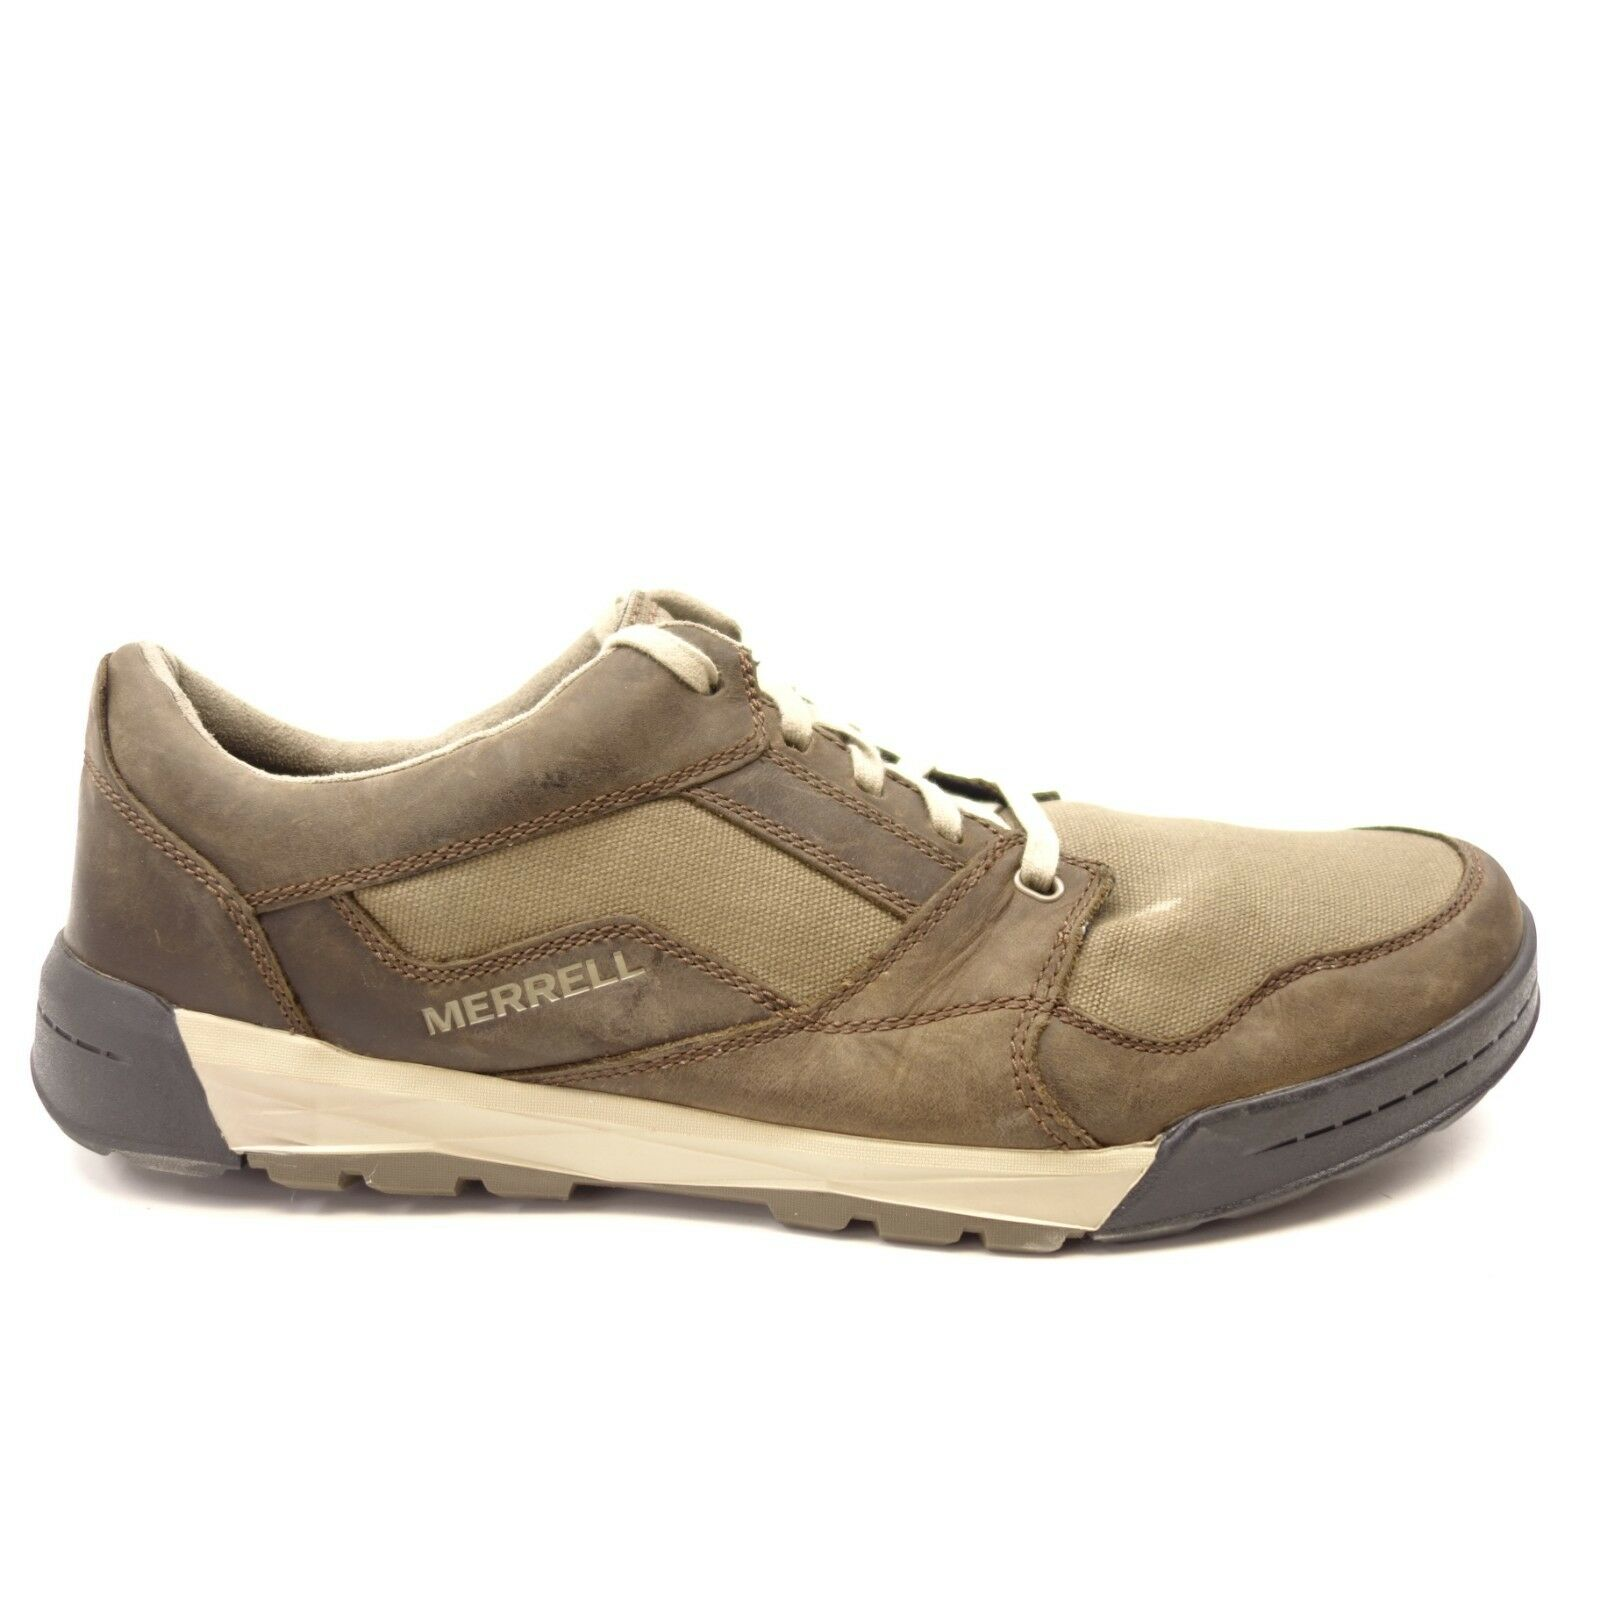 Merrell Mens Berner Shift Lace Leather Athletic Trail Hiking shoes Size US 14